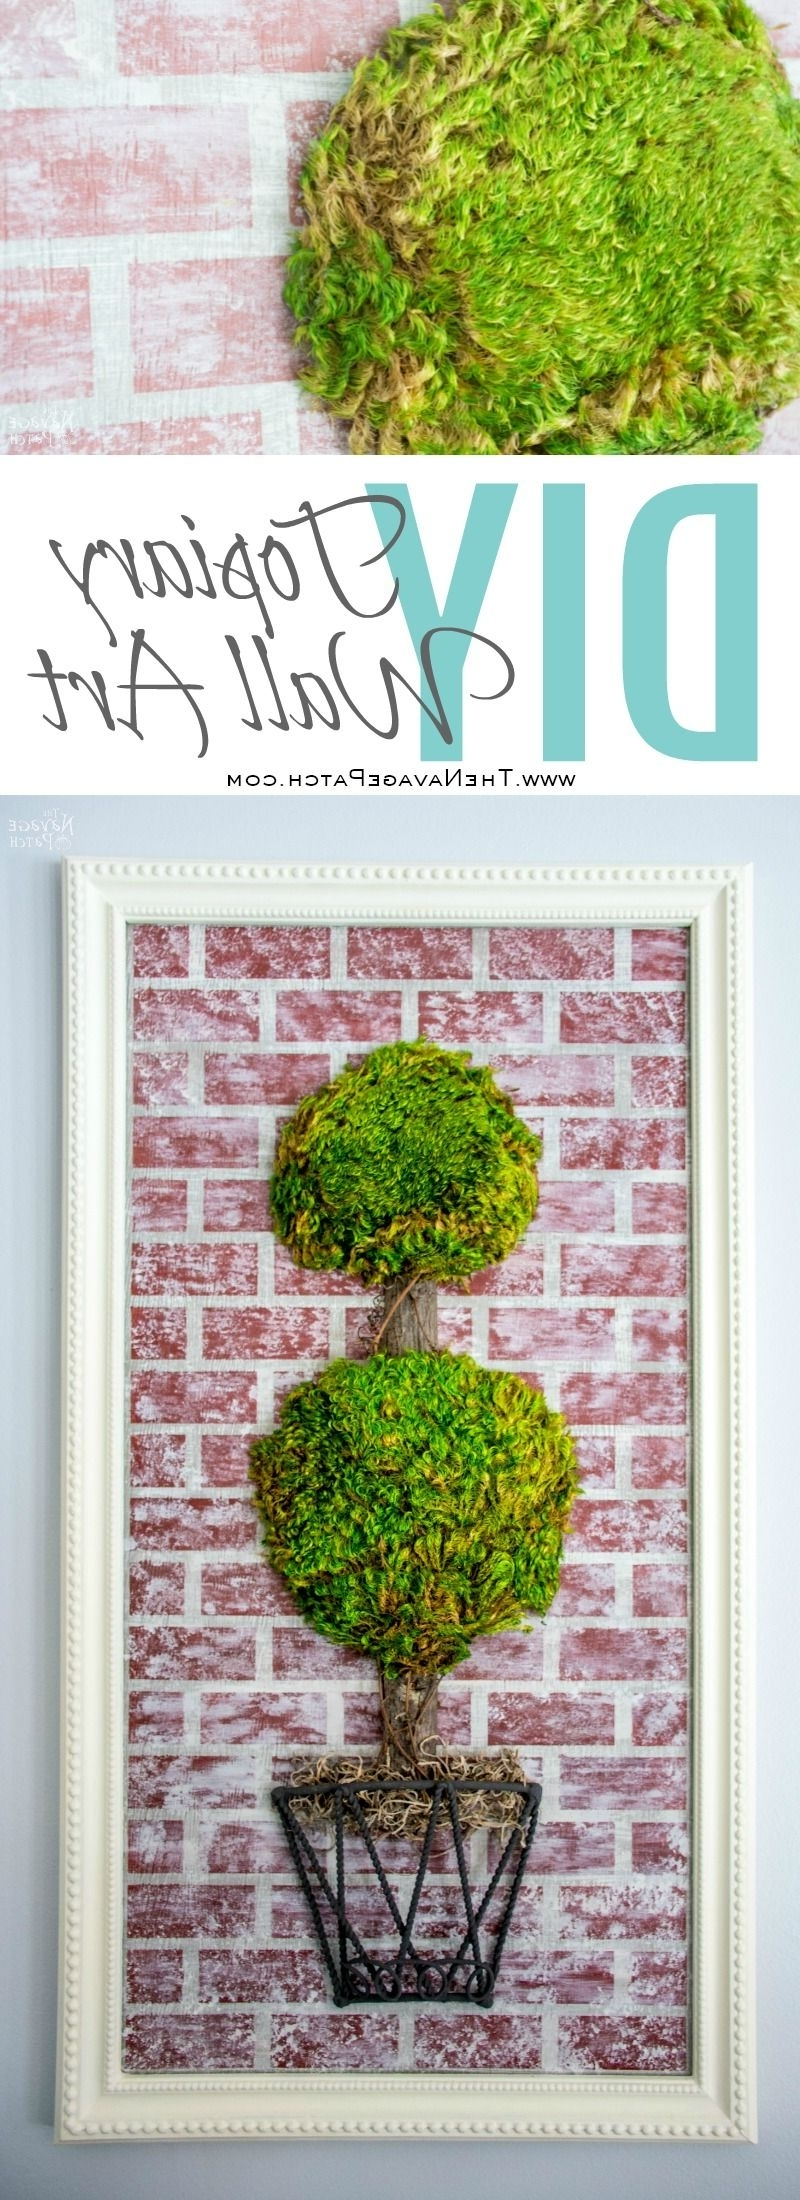 Topiary Wall Art – The Navage Patch Pertaining To Favorite Topiary Wall Art (View 3 of 15)